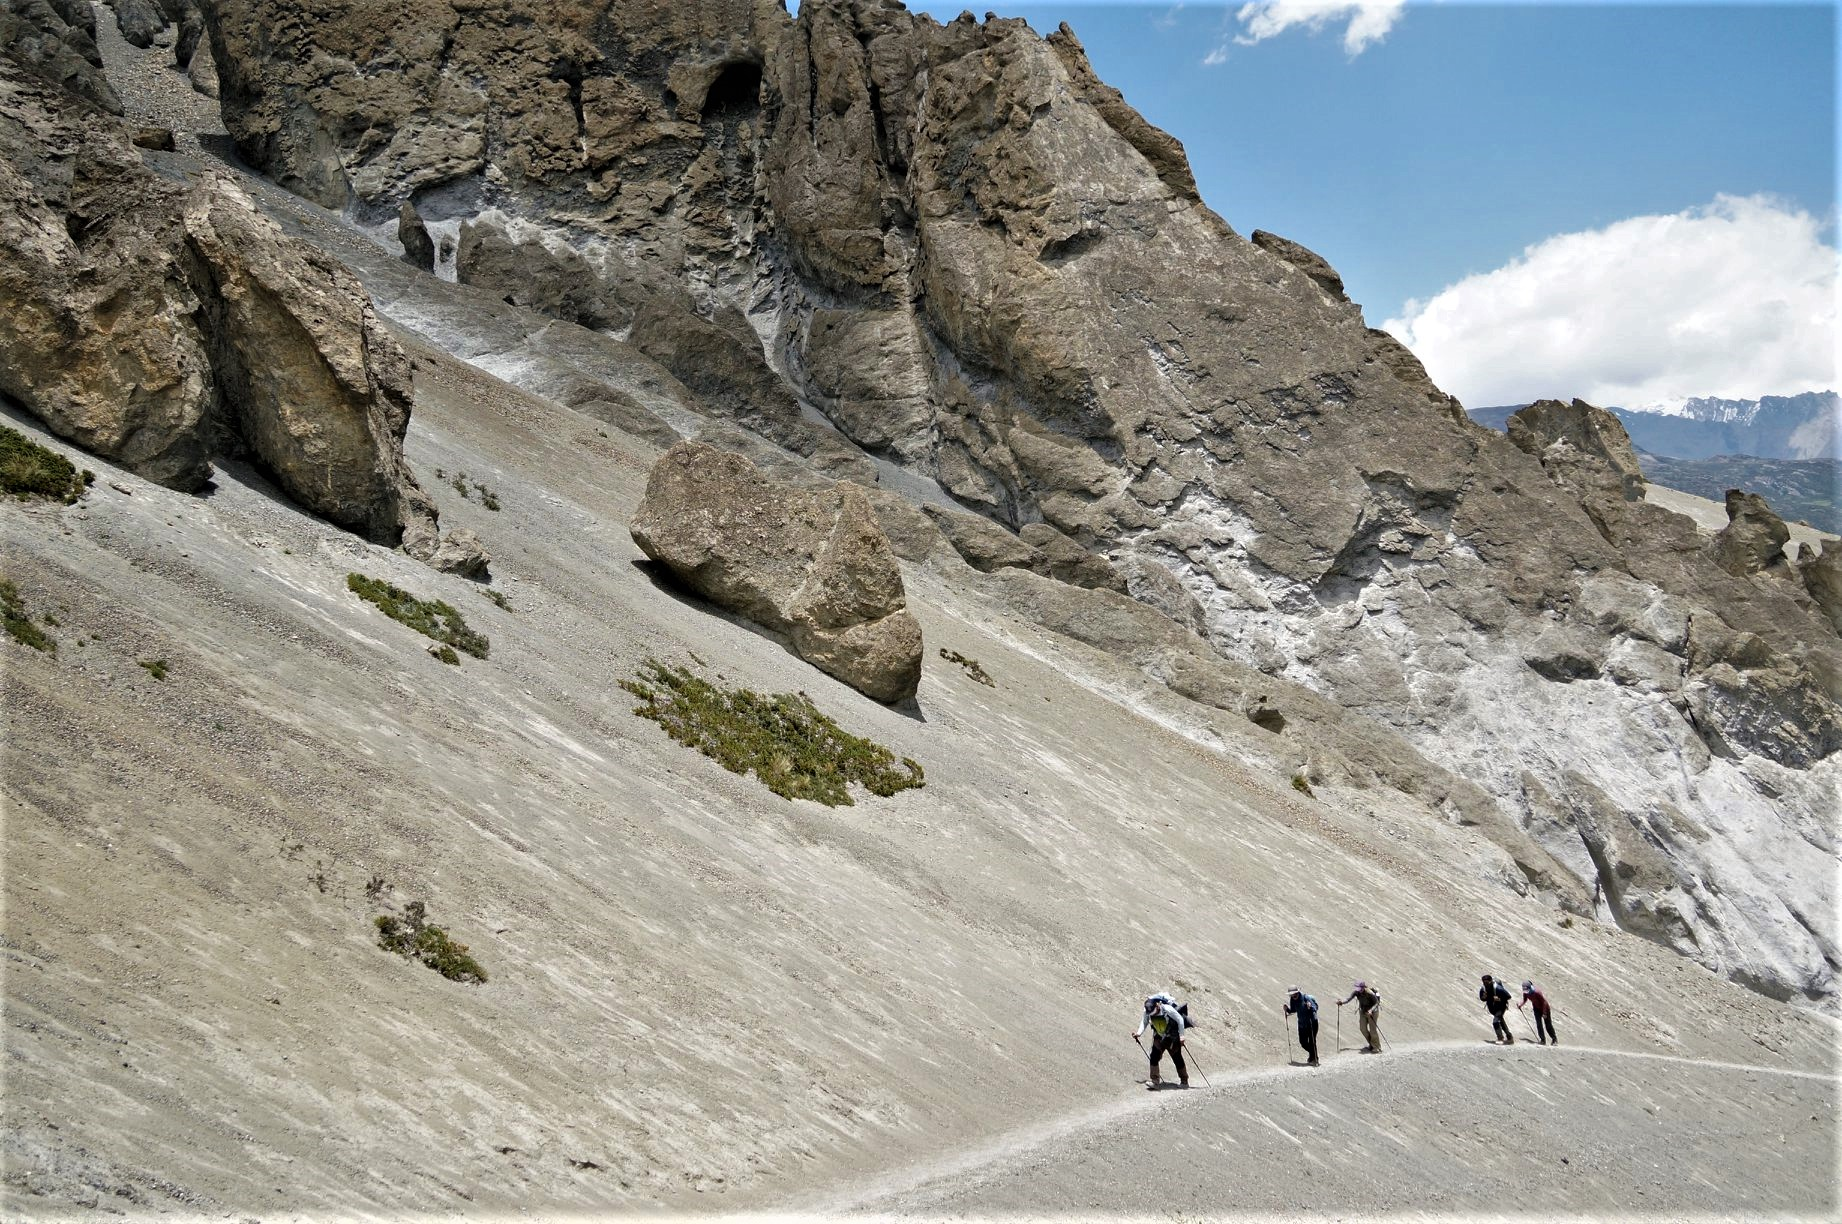 Trekkers are crossing the Landslide zone on the way to Tilicho Base camp from Khangsar on our fifth day of the family trek in Annapurna region june 2019.